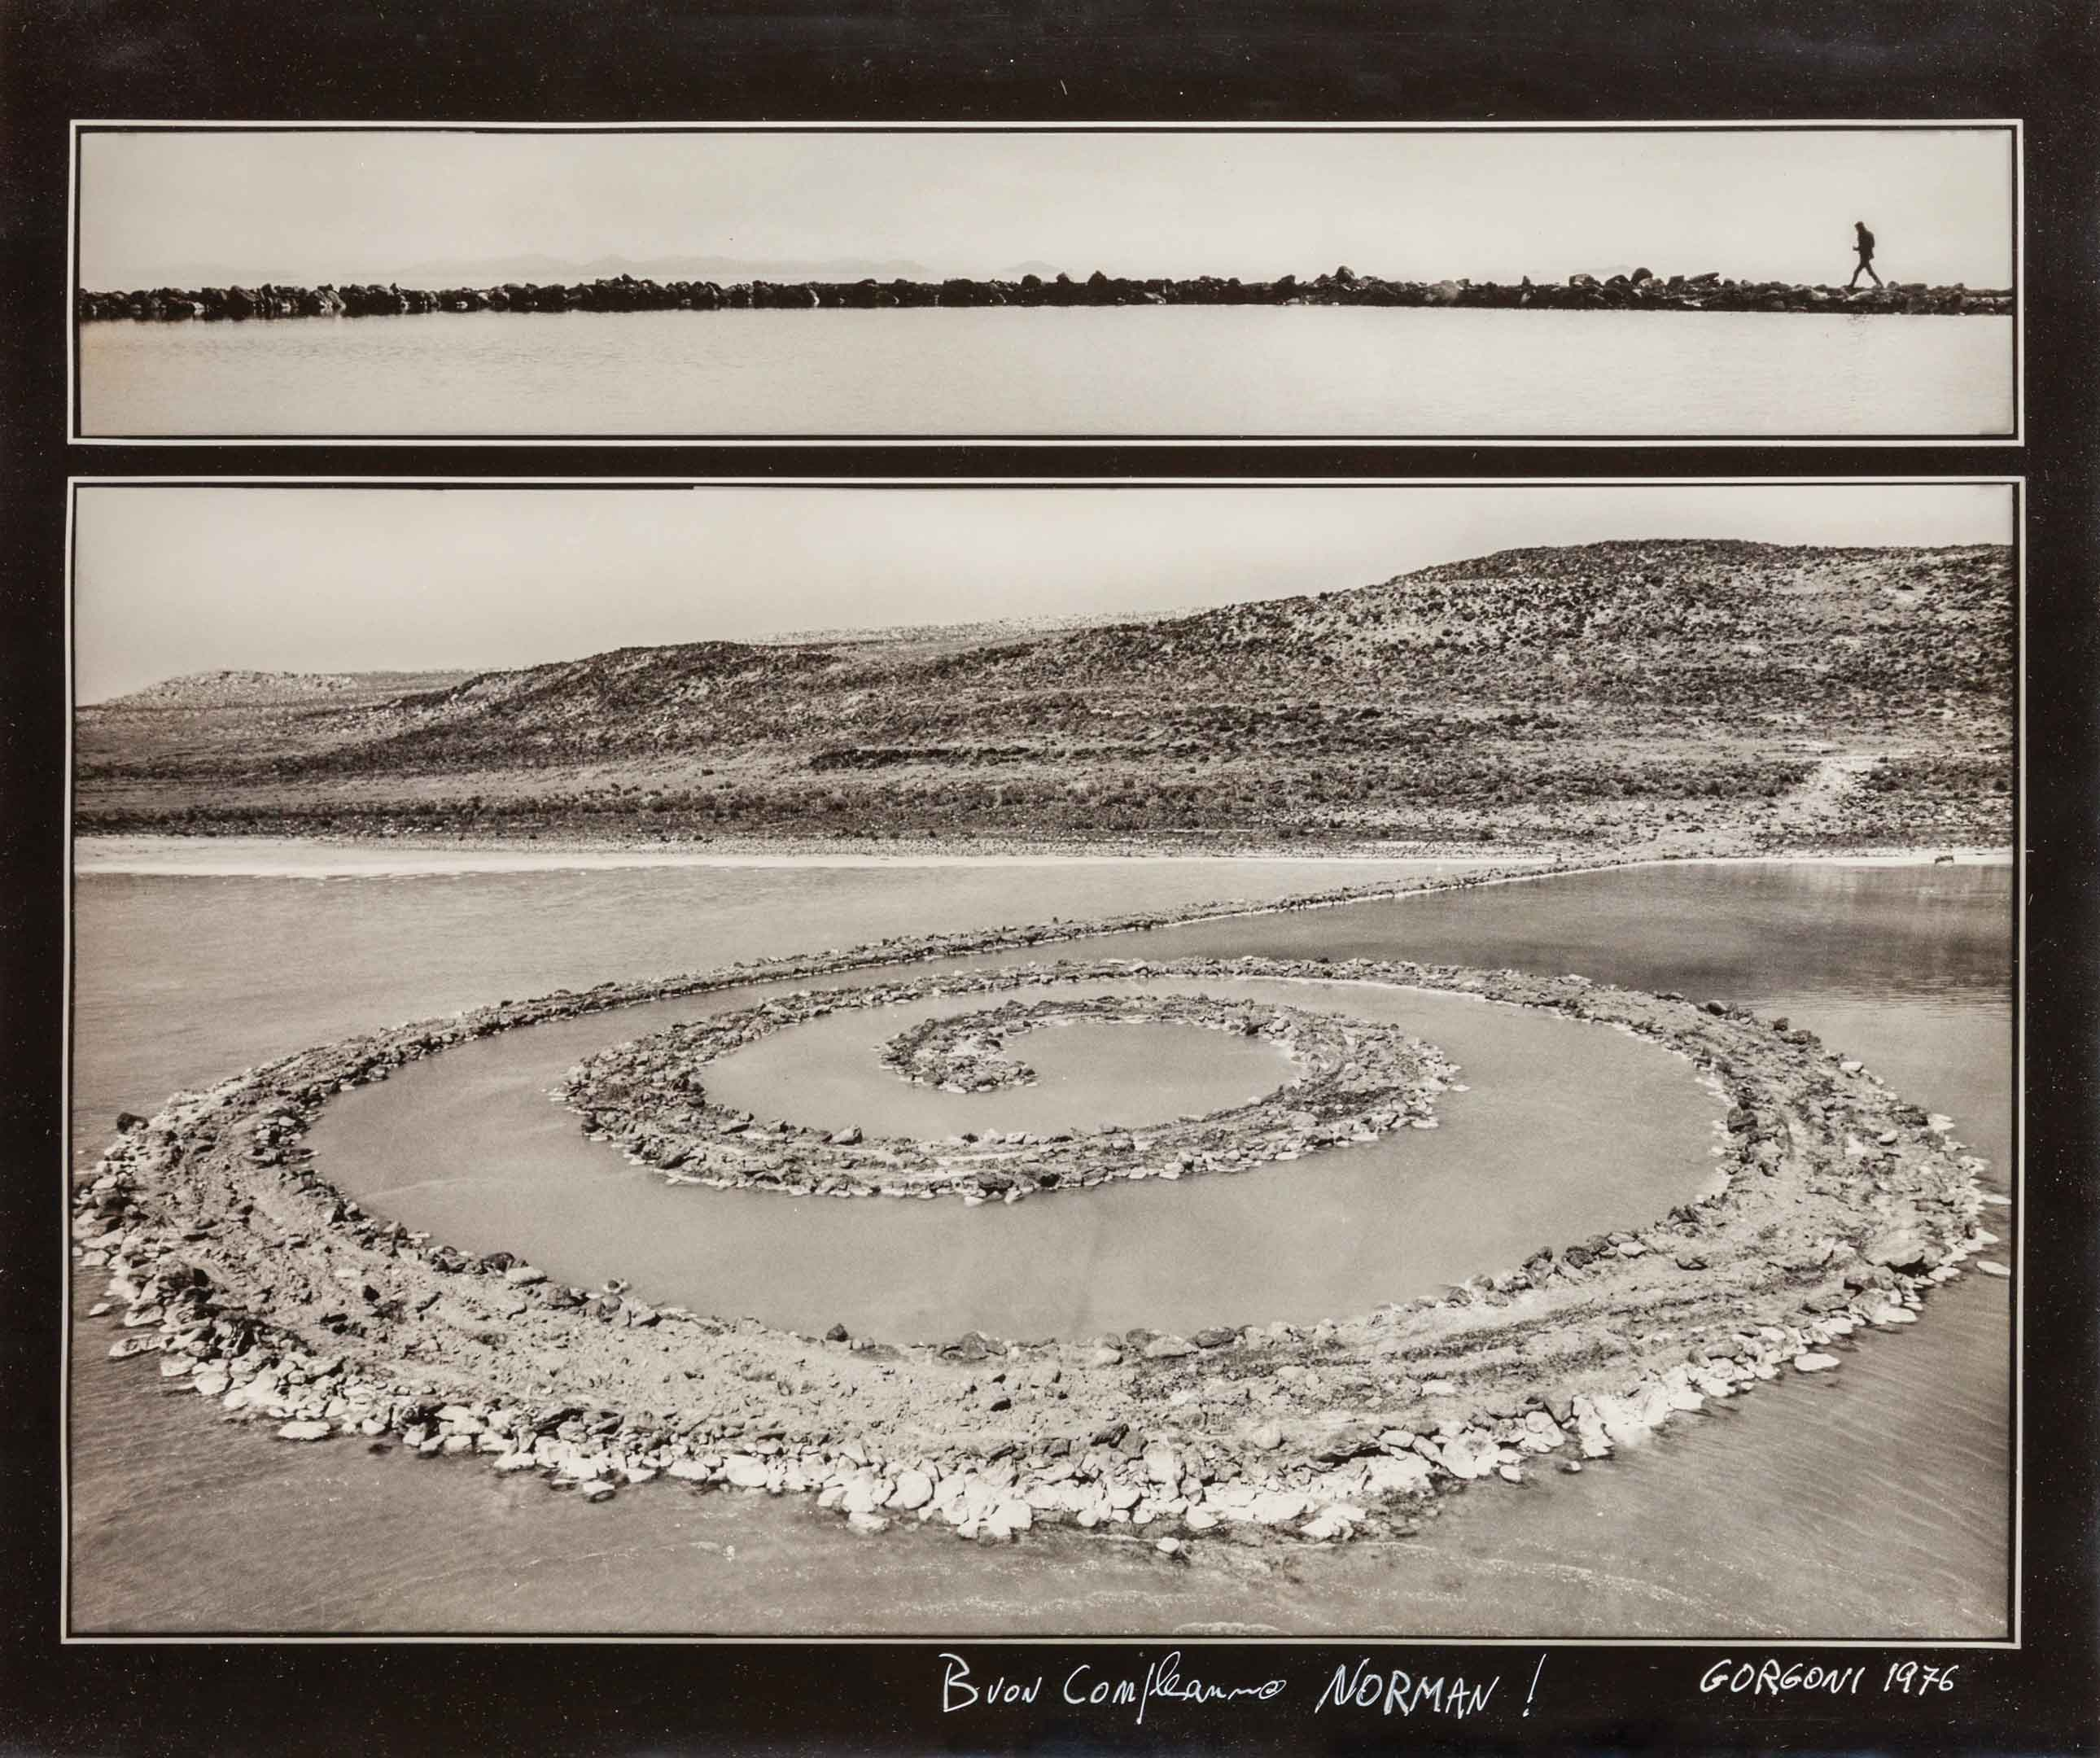 Gorgoni Gianfranco, Robert Smithson's Spiral Jetty, 1976, silver gelatin print. MOCA Permanent Collection